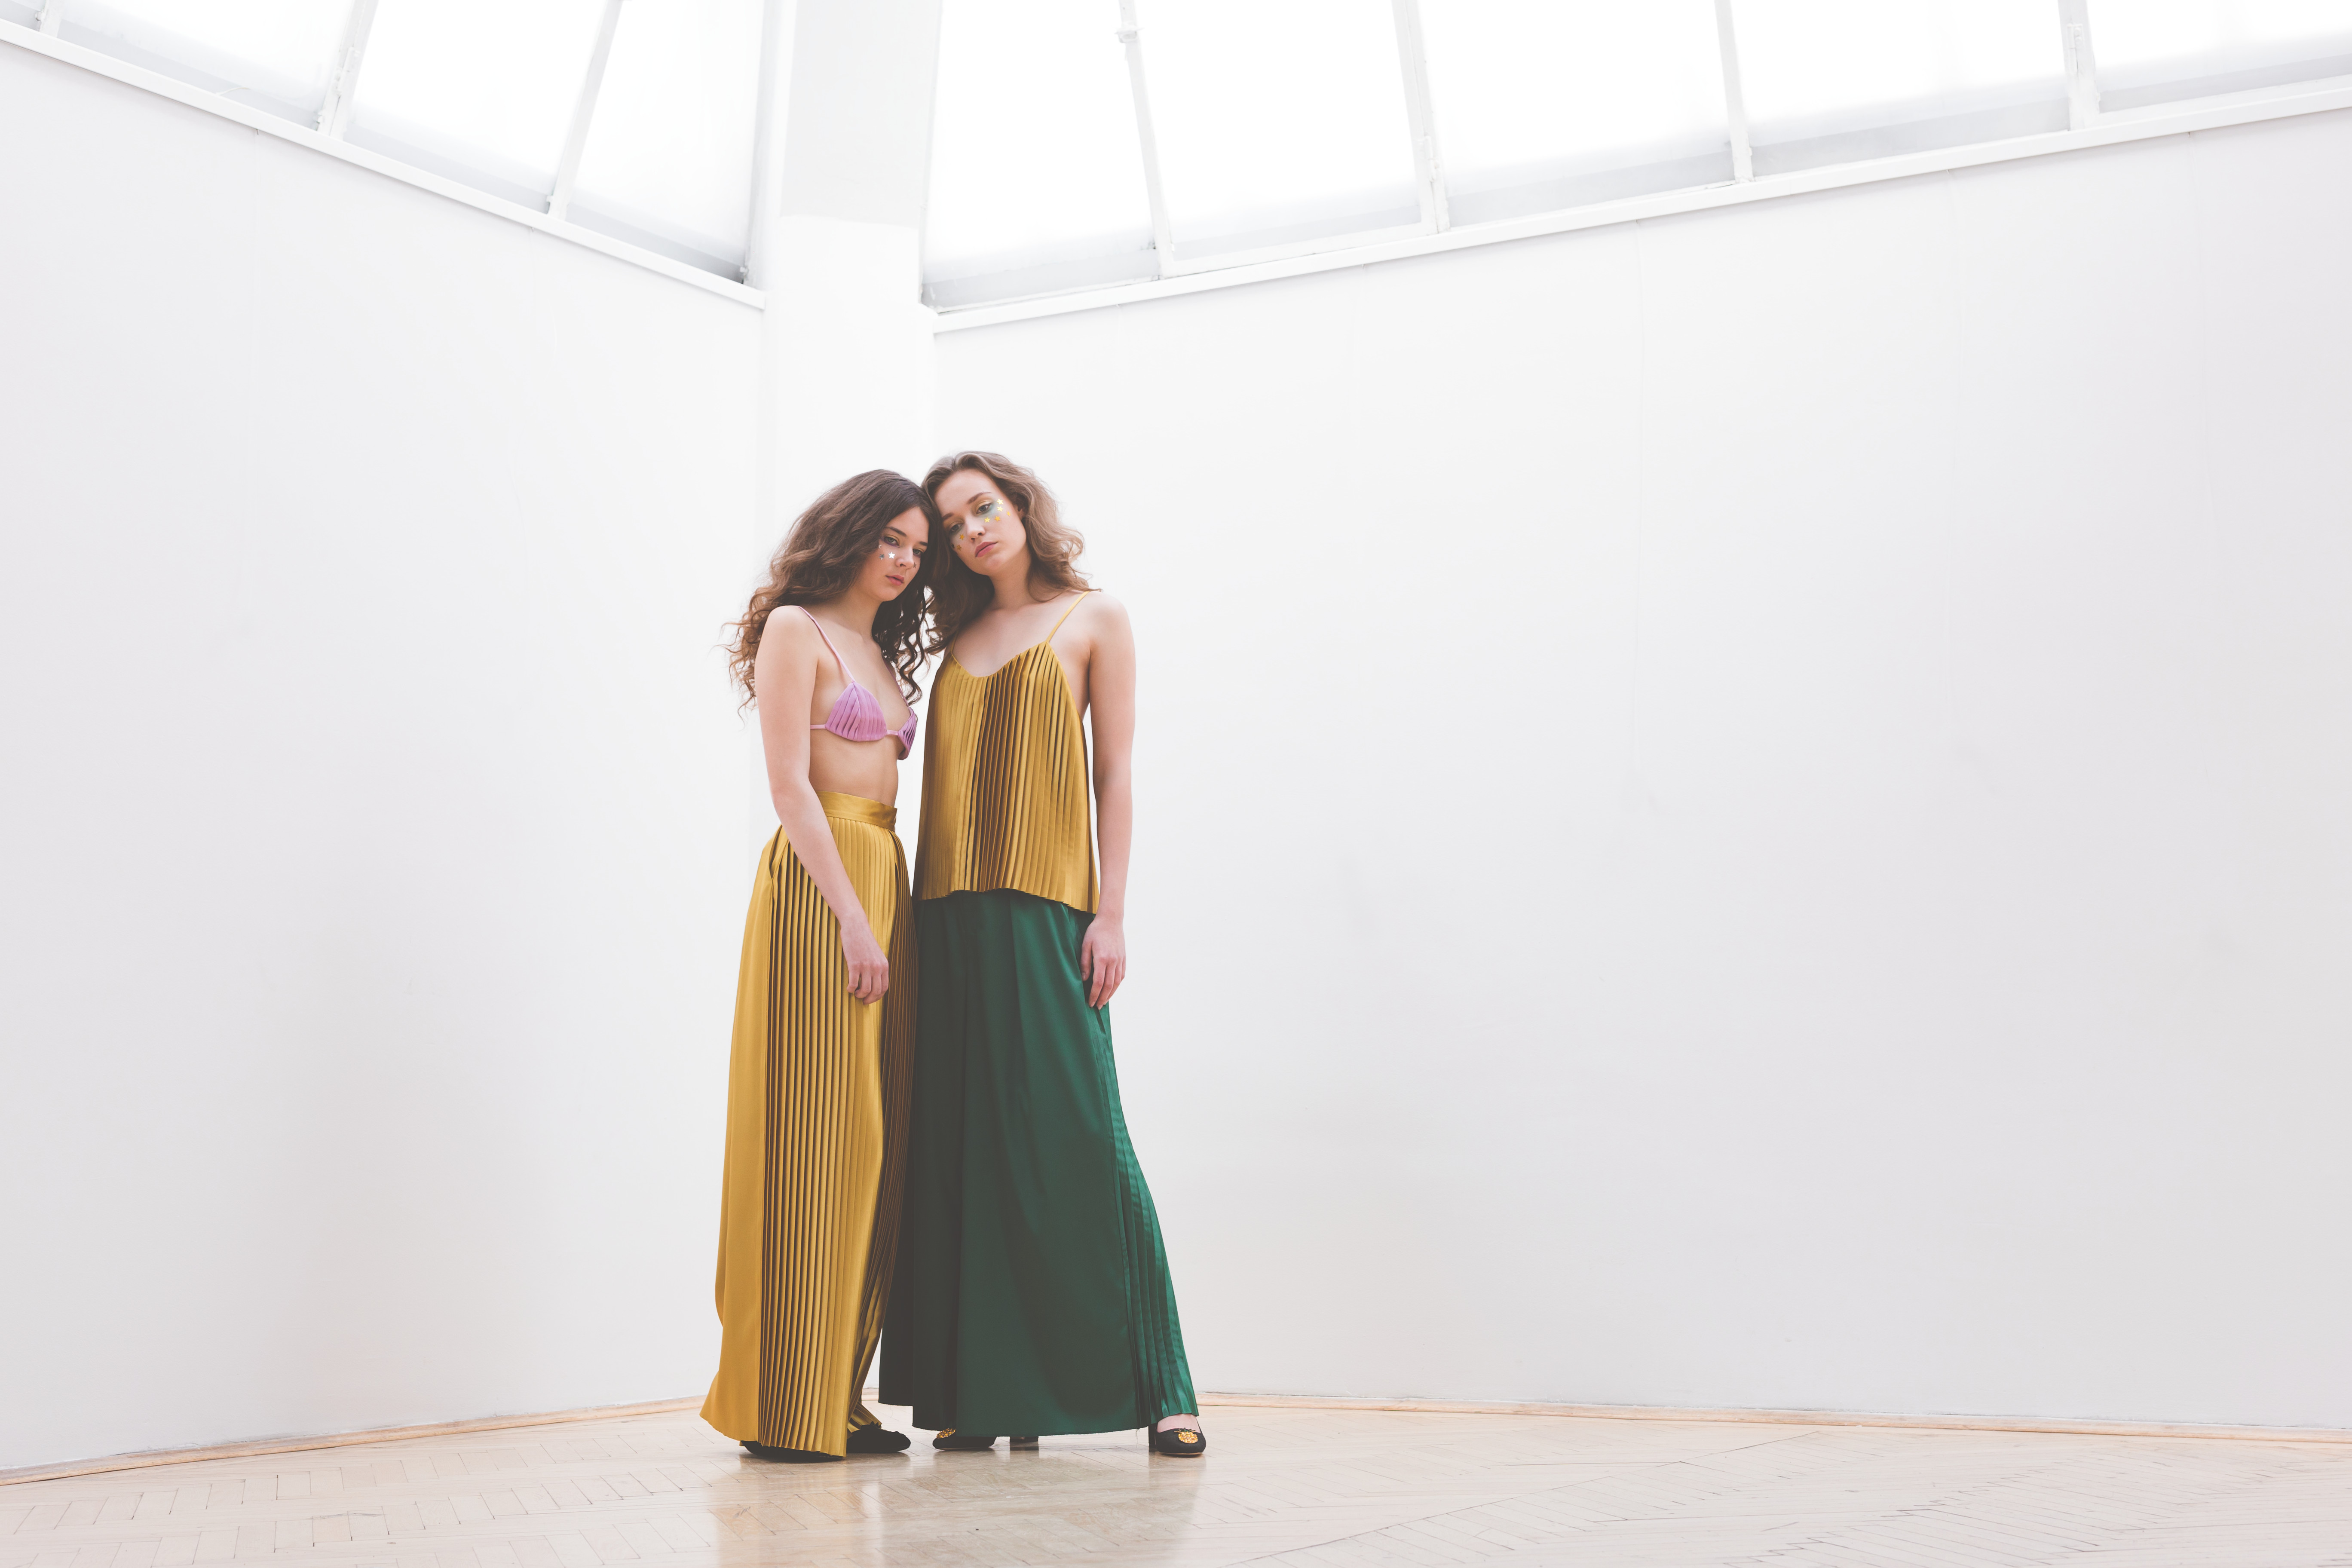 Muses editorial